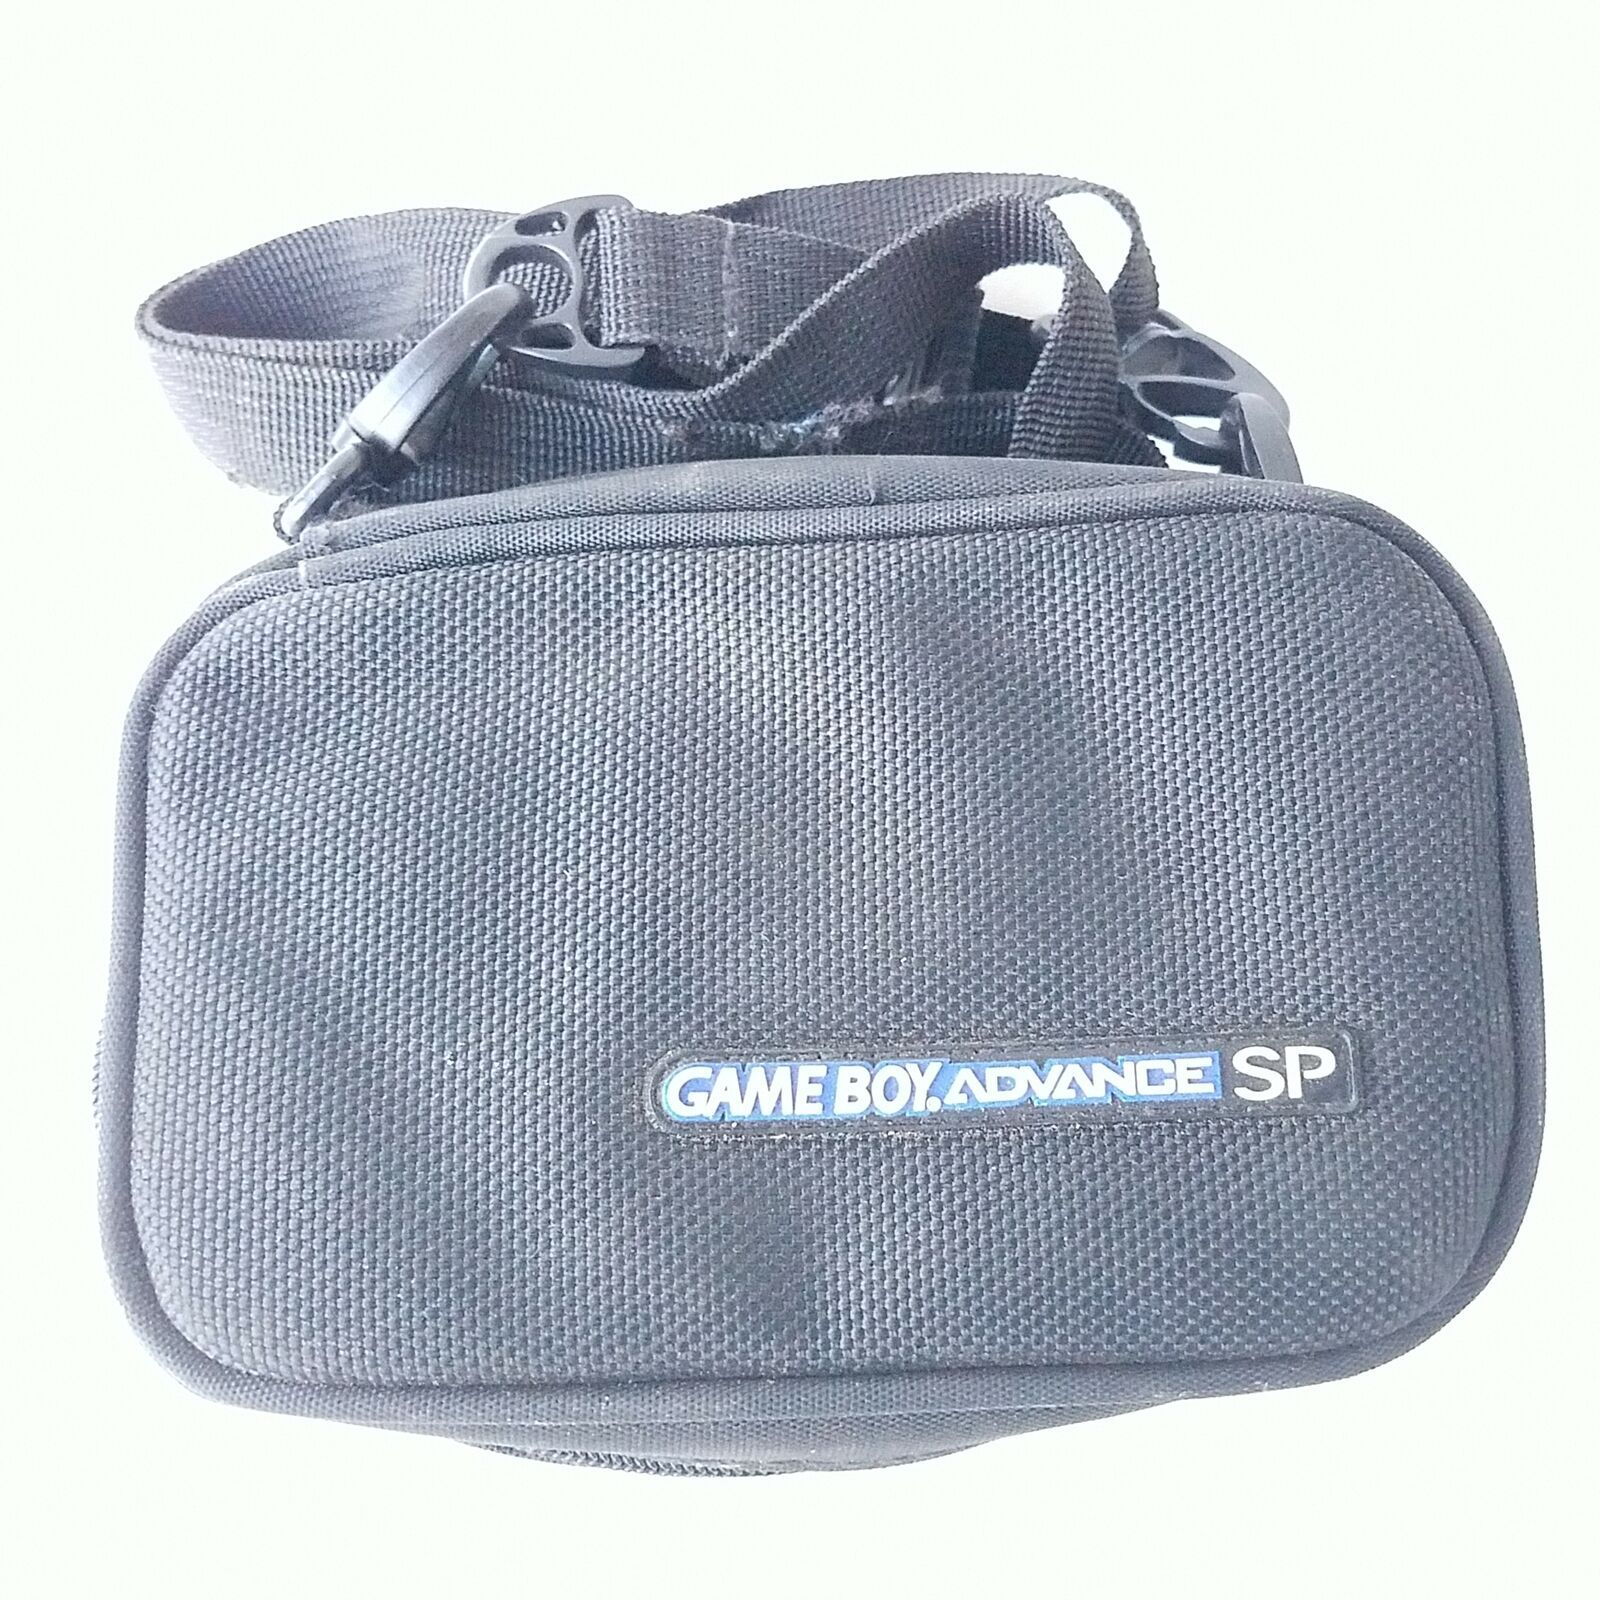 Primary image for Nintendo GameBoy Advance SP Gray Carrying Case